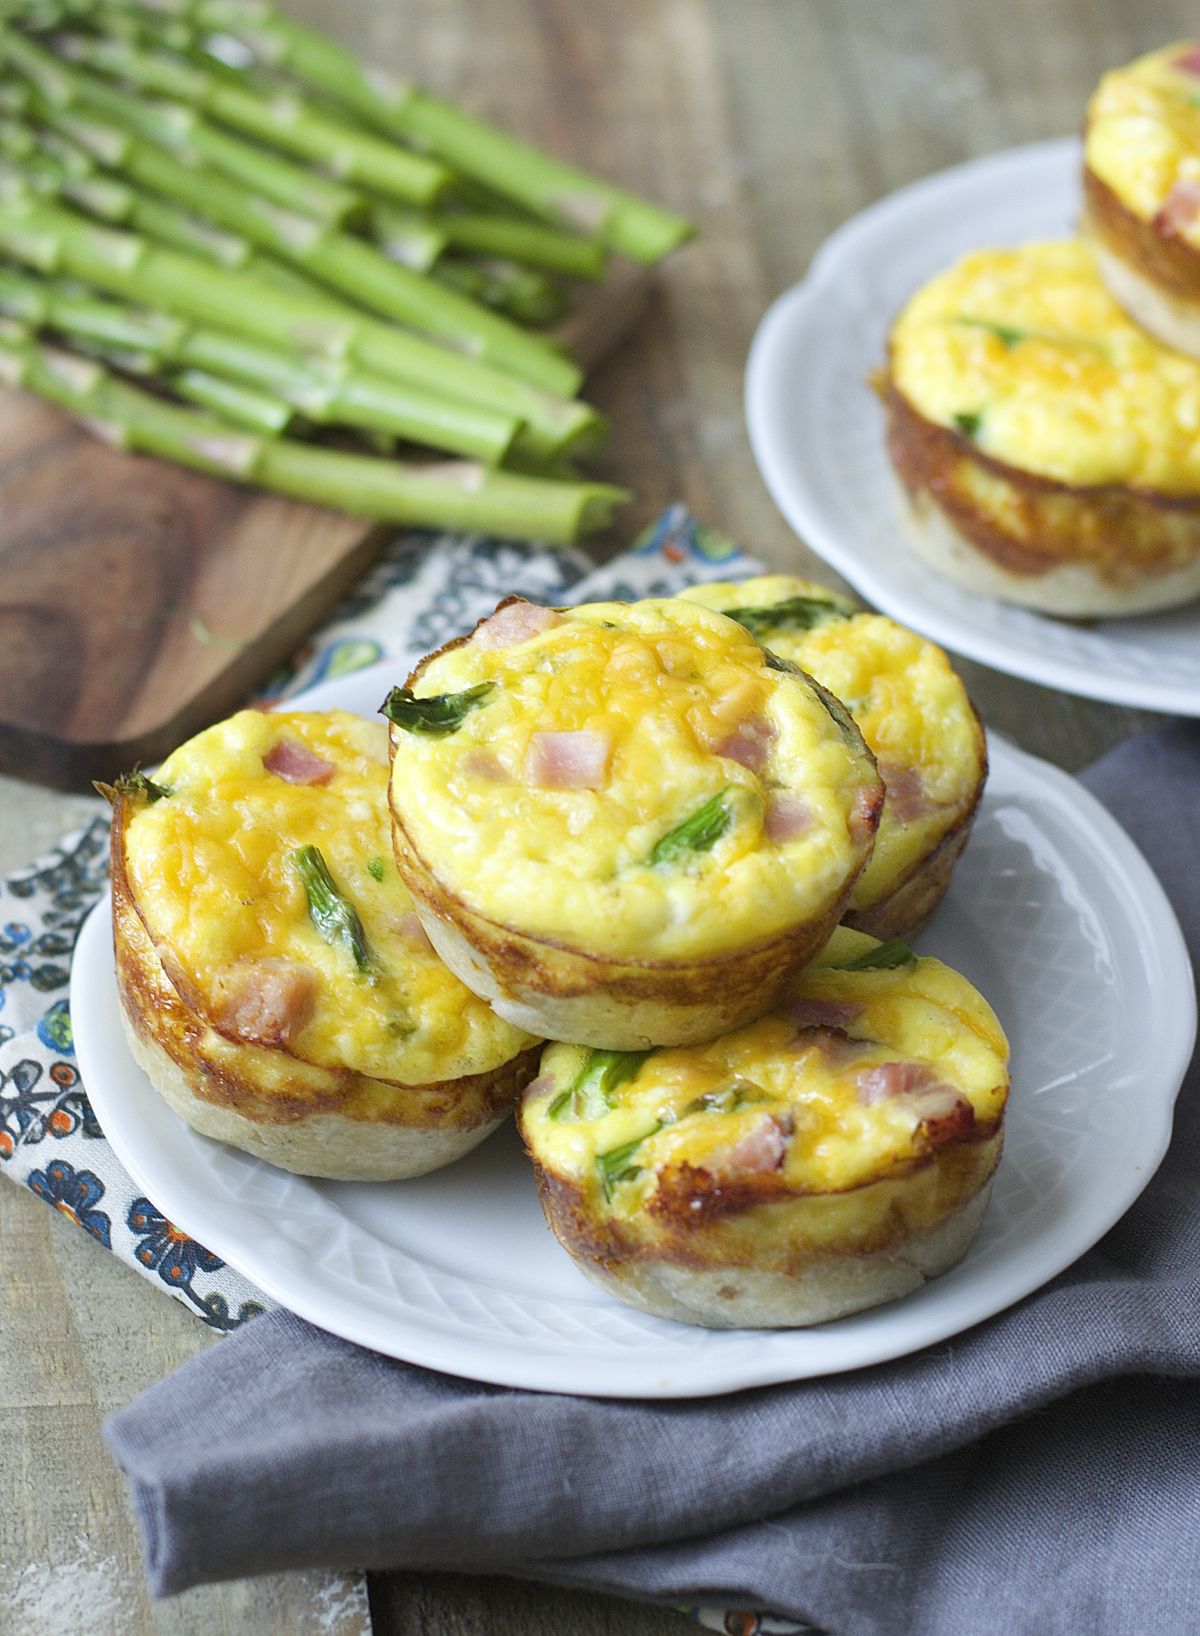 A stack of four ham and asparagus quiche on a white plate. Fresh asparagus spears rest in the background, along with another plate of mini quiche.